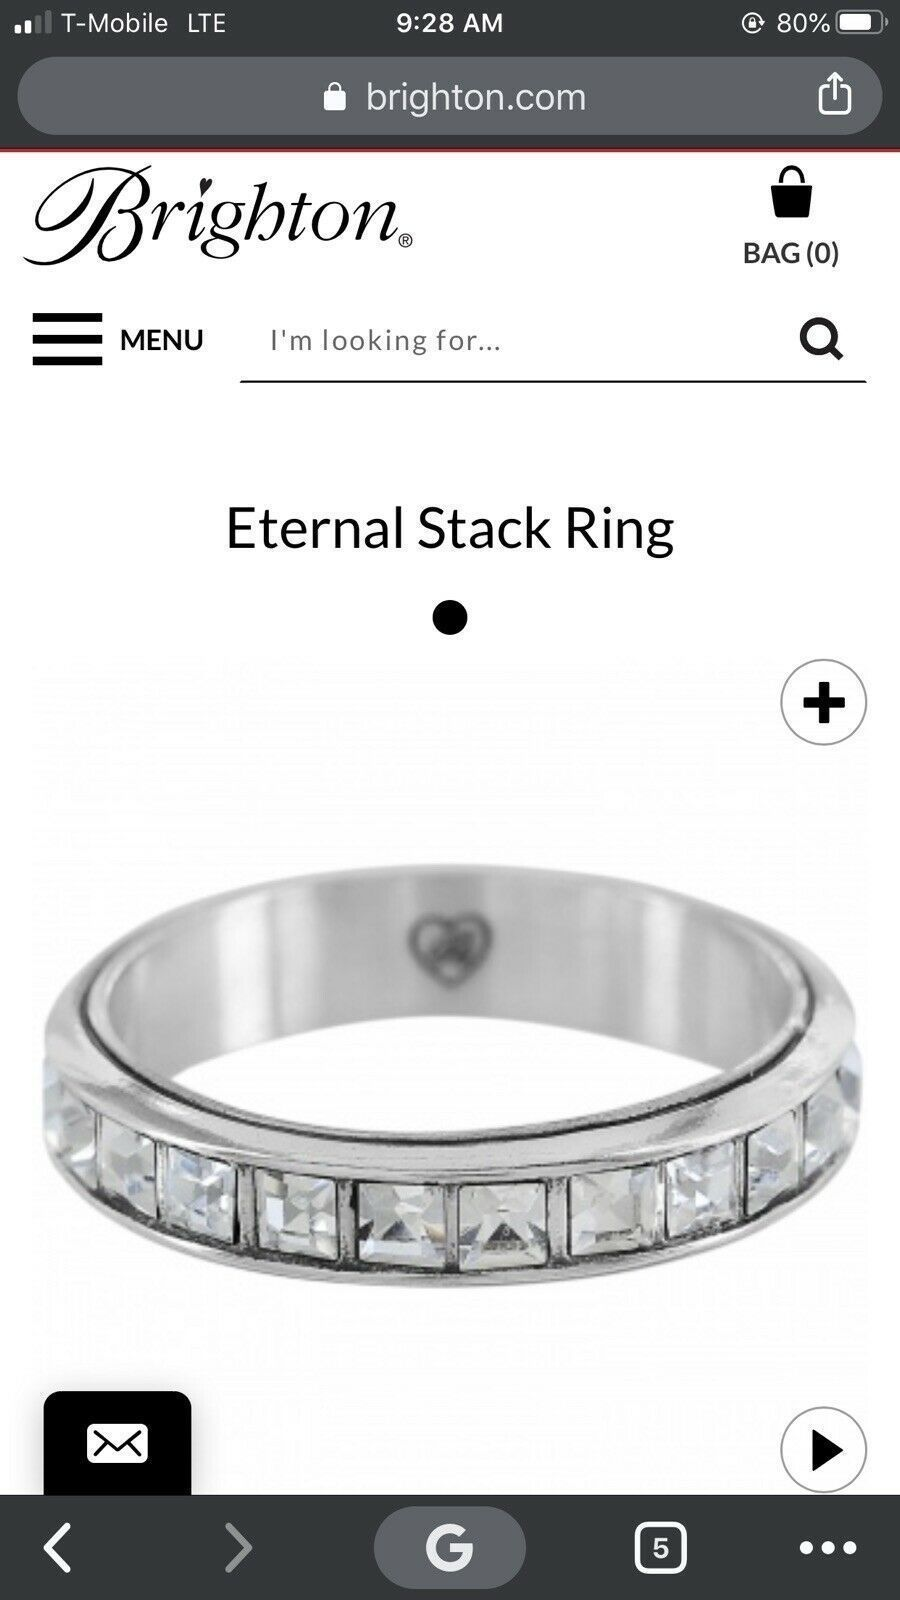 Jewelry 60% OFF! Ring Stack Archives | Awesome Jewelry Brighton Eternal Stack Ladies Ring Size 7... Ring Stack Archives | Awesome Jewelry Brighton Eternal Stack Ladies Ring Size 7 – Ring Stack – #Archives #Awesome #Brighton #Eternal #Jewelry #PANDORA #style #Accessories #shopping #styles #outfit #pretty #girl #girls #beauty #beautiful #me #cute #stylish #design #fashion #outfits #PANDORAbracelets #PANDORAcharm